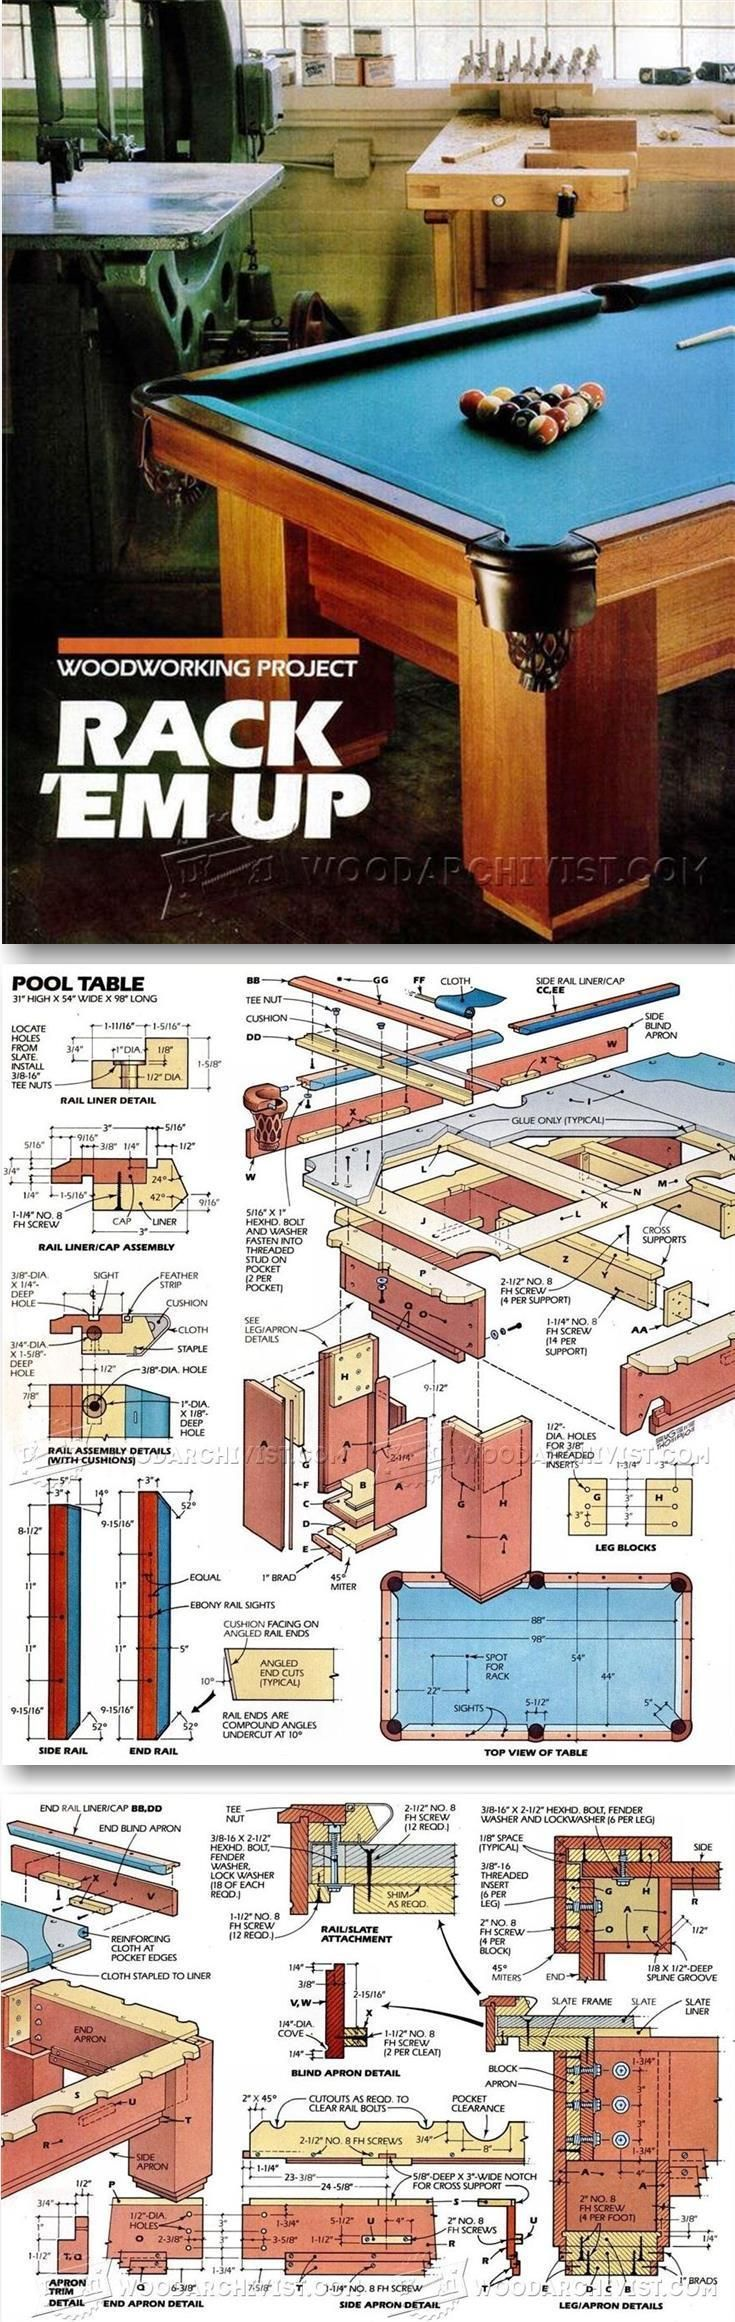 Pool Table Plans - Woodworking Plans and Projects | http://WoodArchivist.com